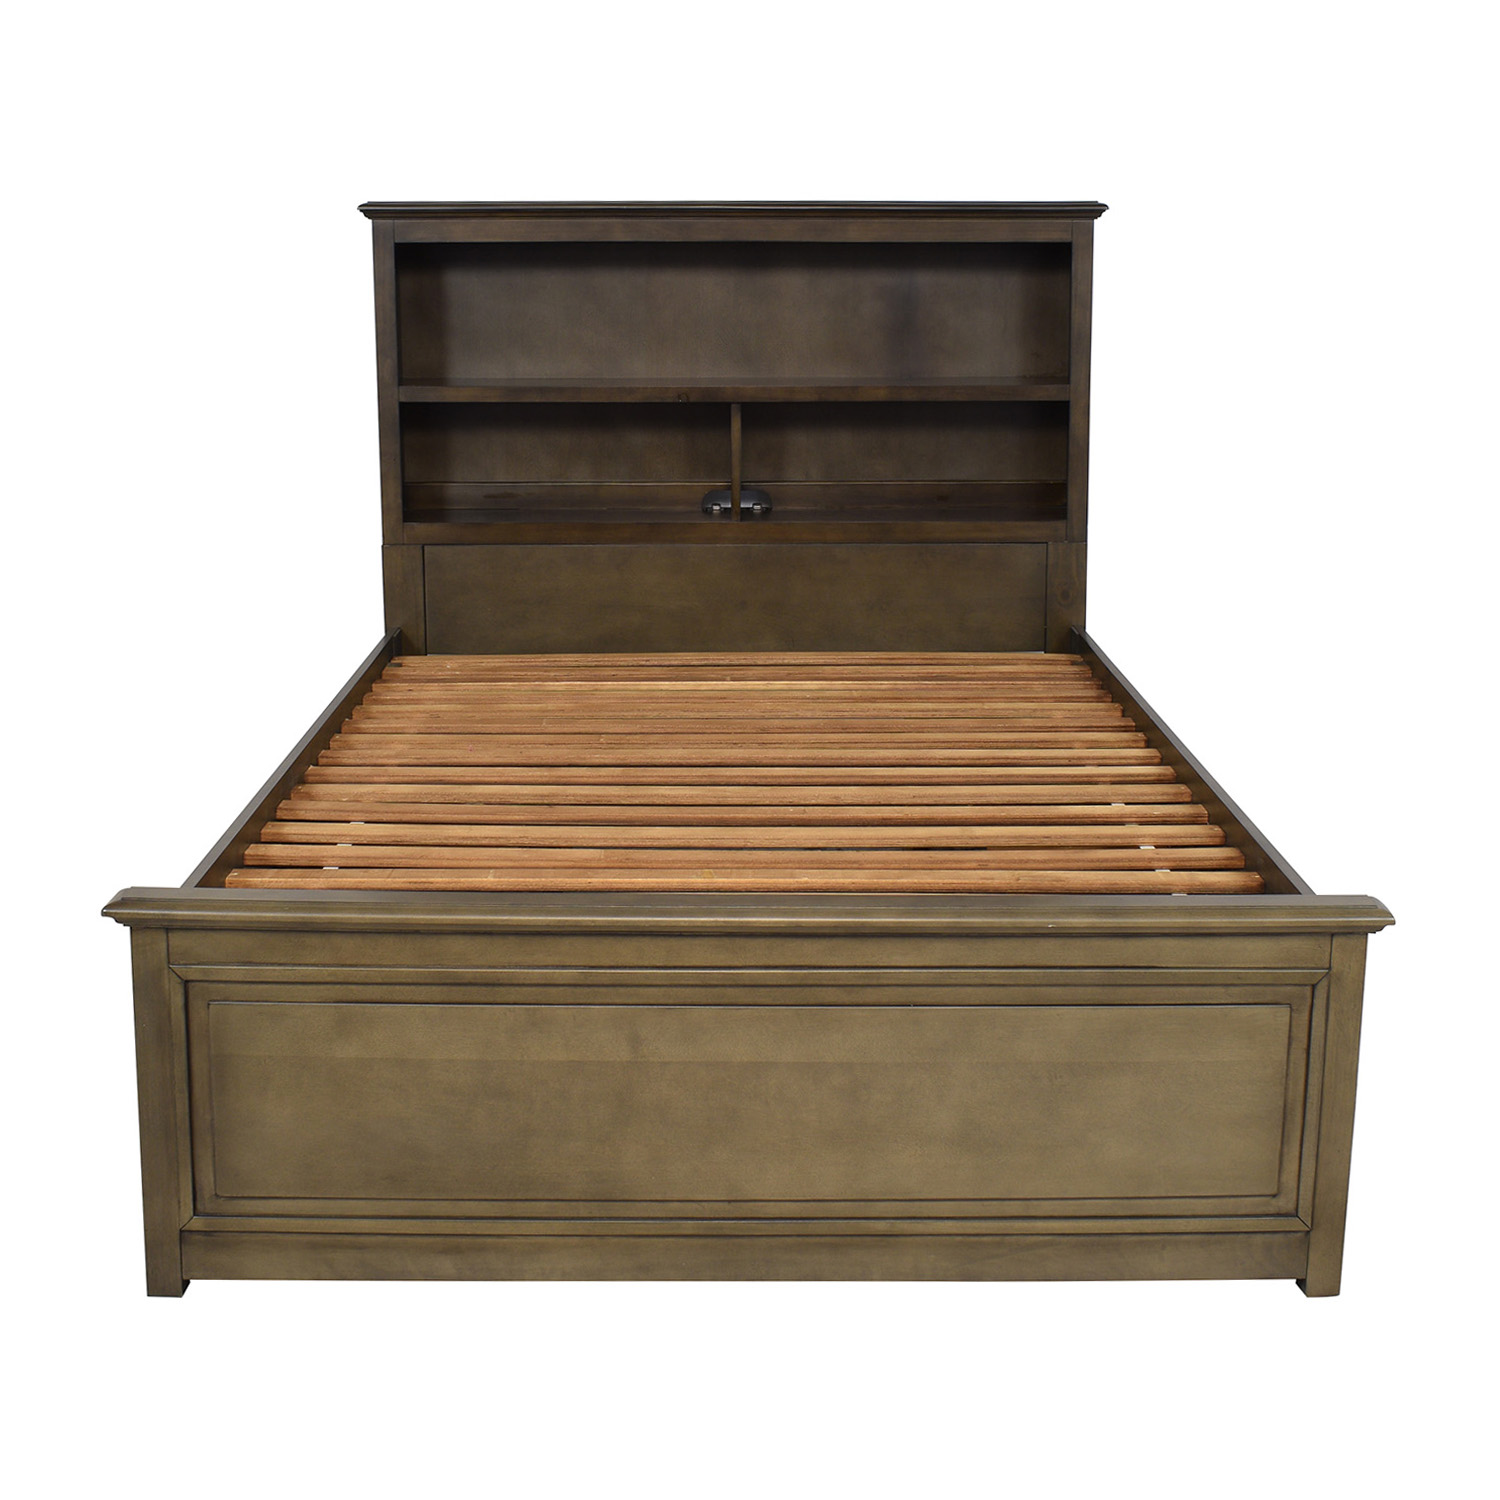 Raymour & Flanigan Raymour & Flanigan Full Storage Bed Frame price